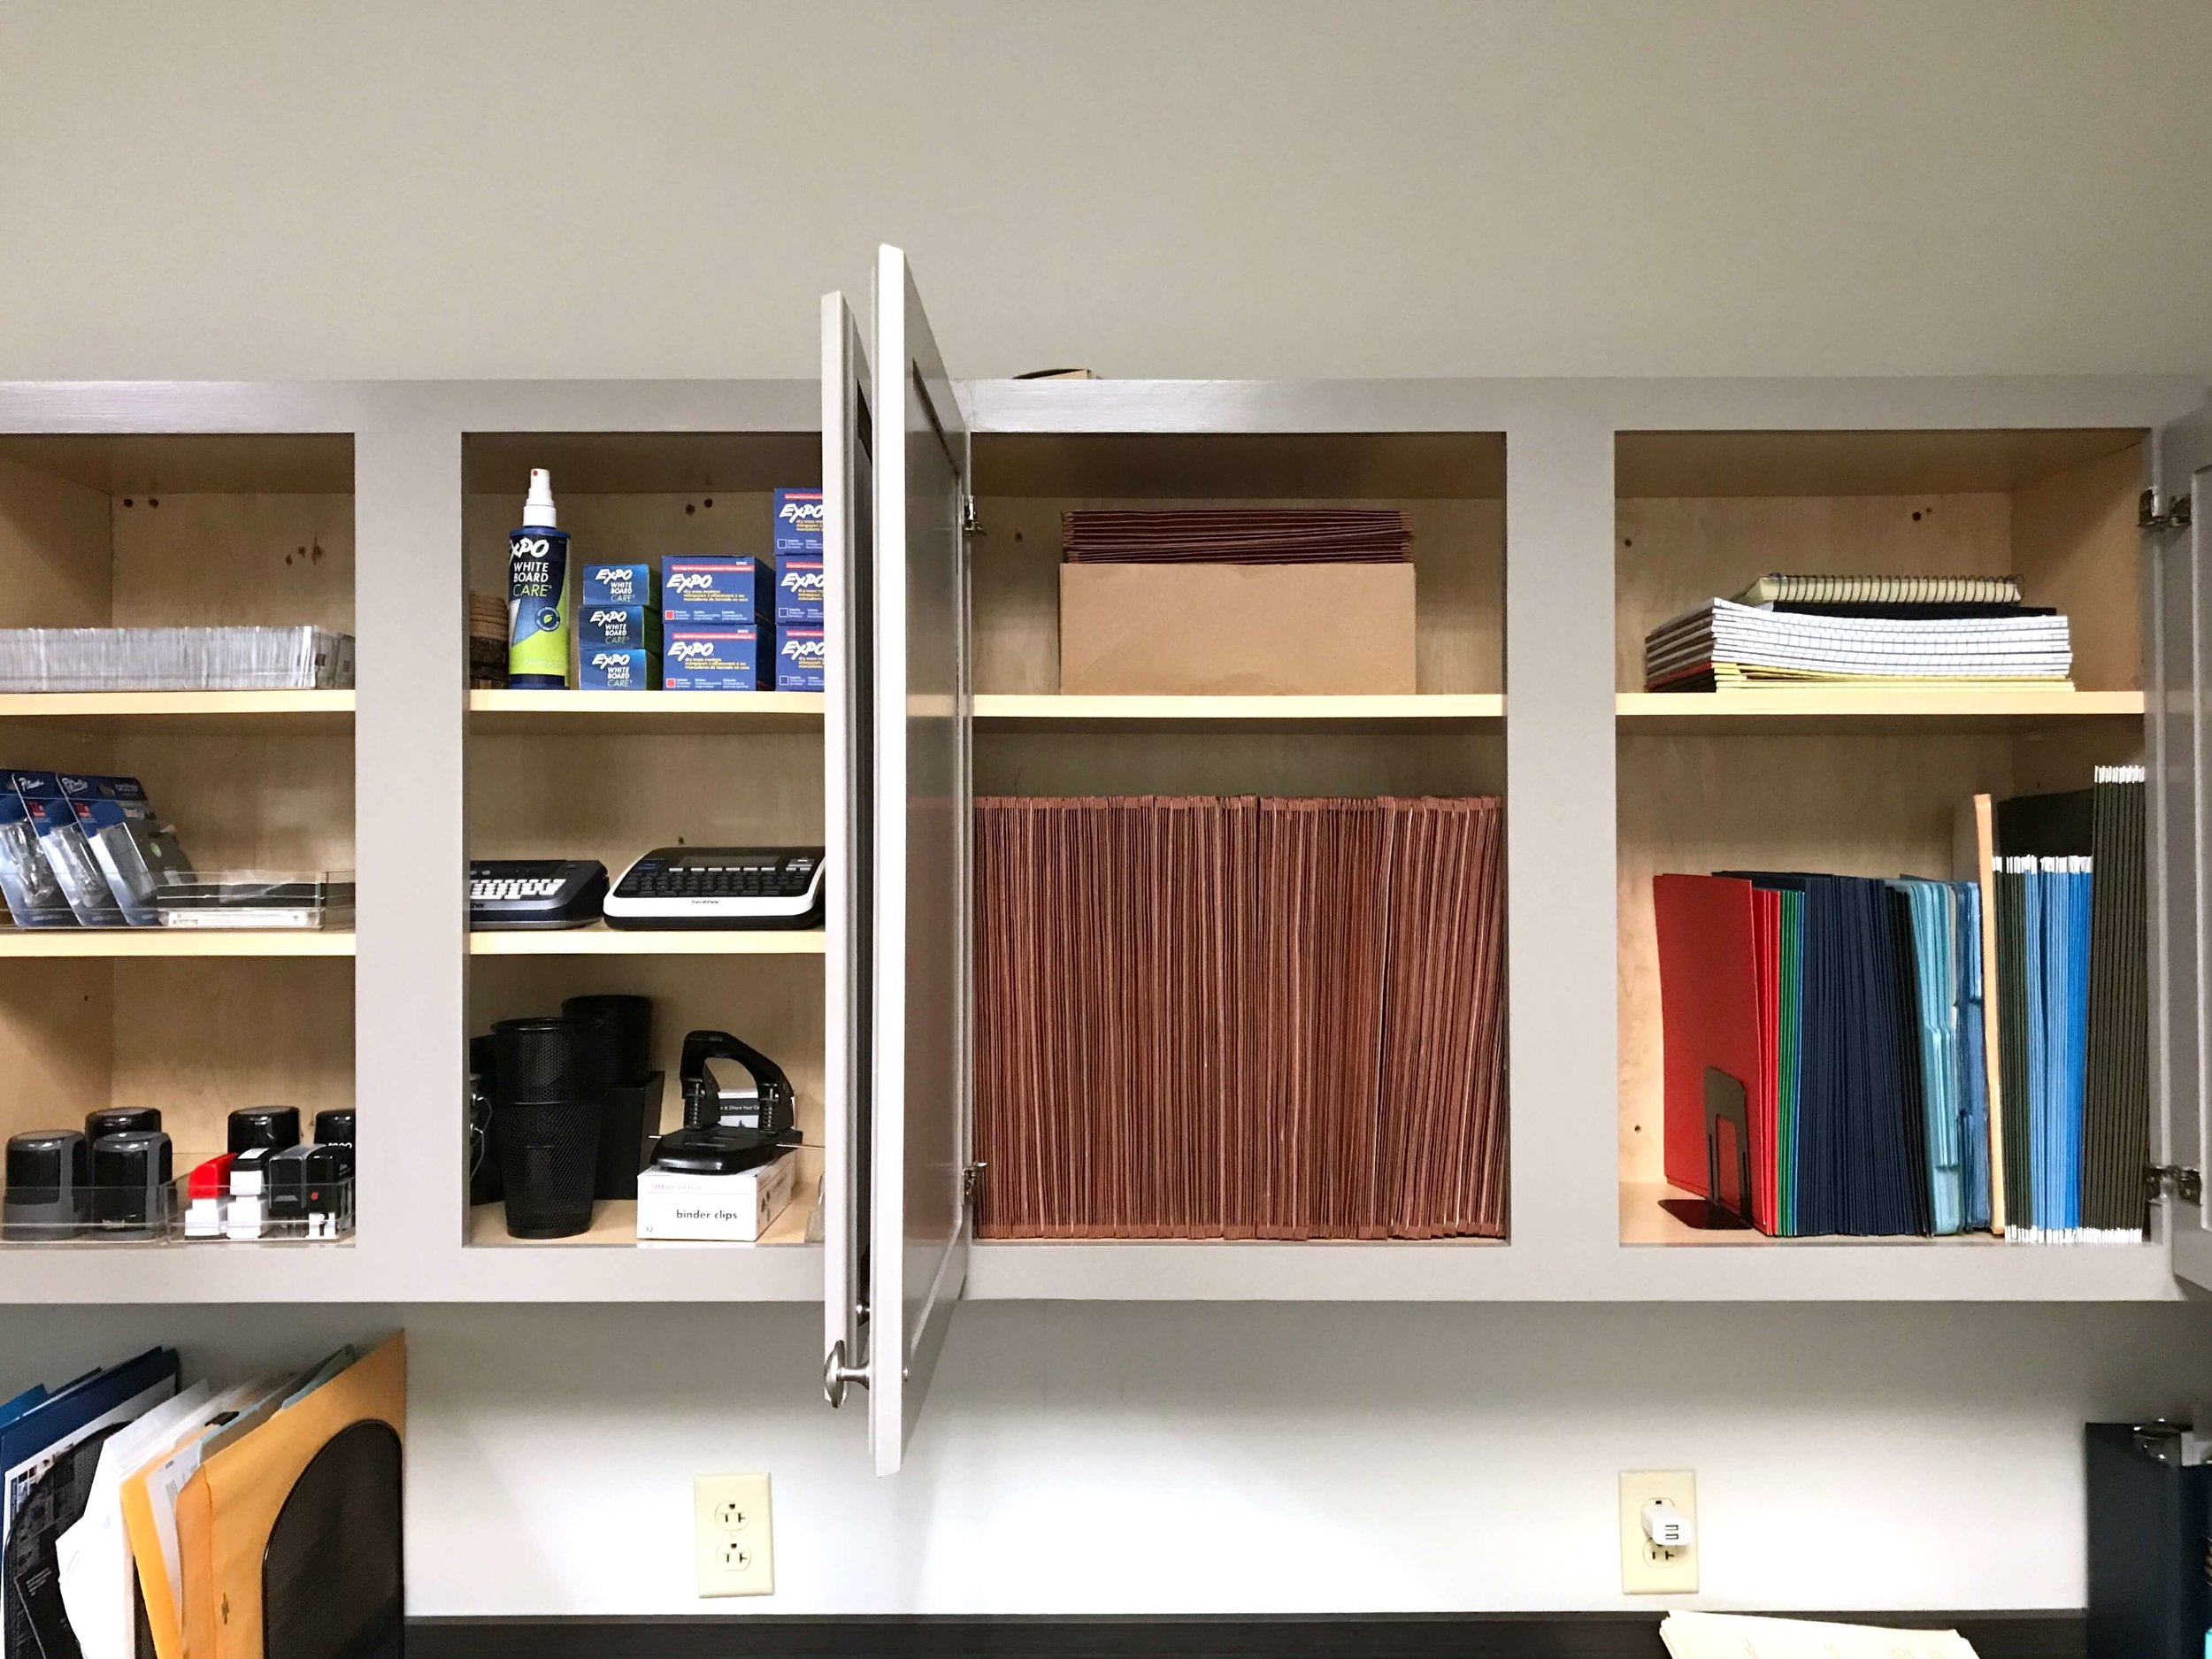 Extra supplies and files are sorted and stored so they are easy to find.